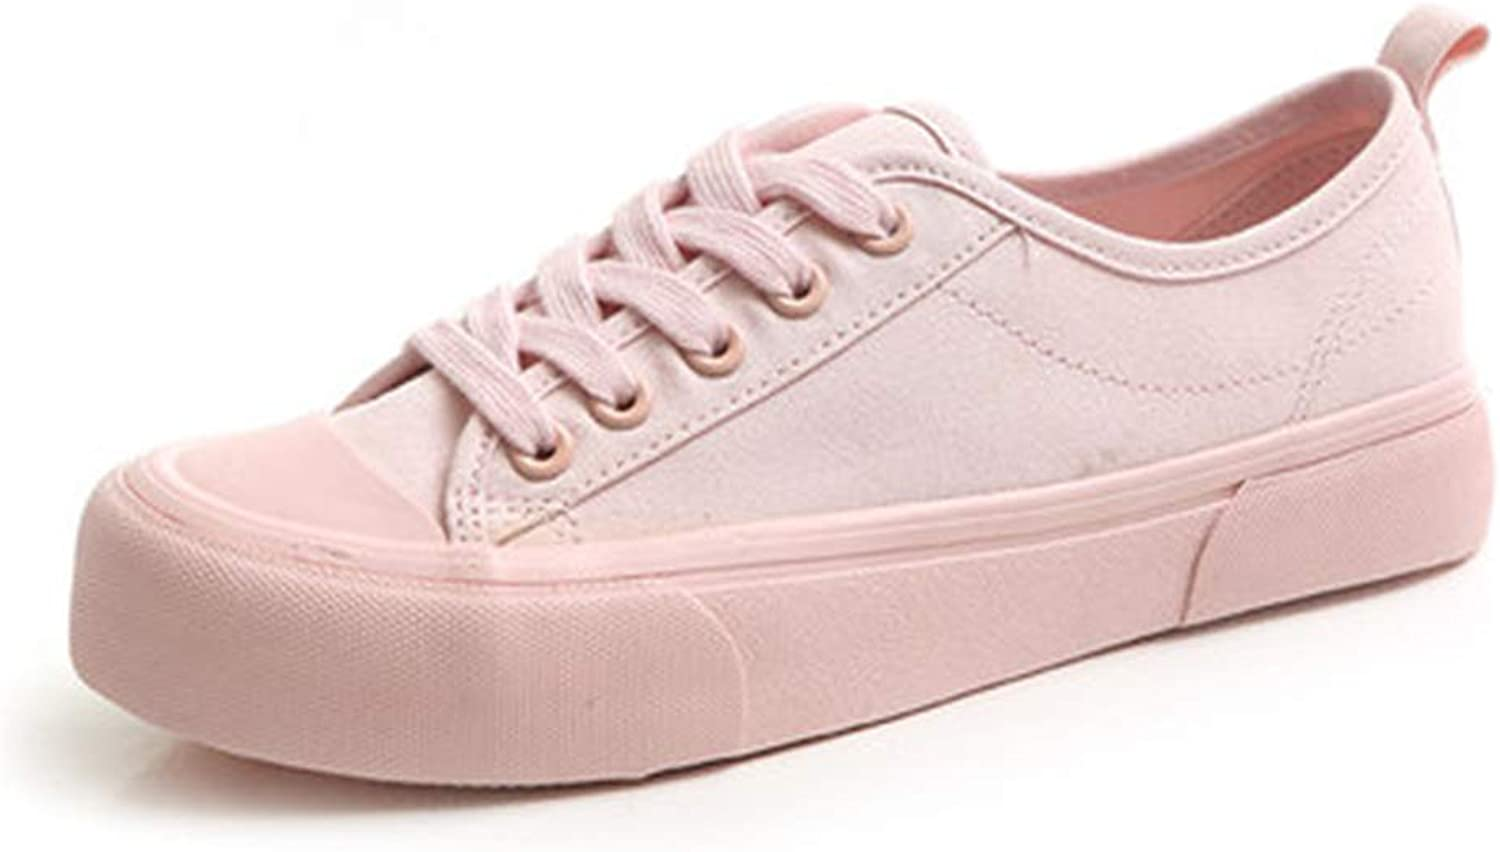 Women shoes Autumn Candy color Lace Up Solid color All Match shoes De women 2019 Canvas shoes 35-39